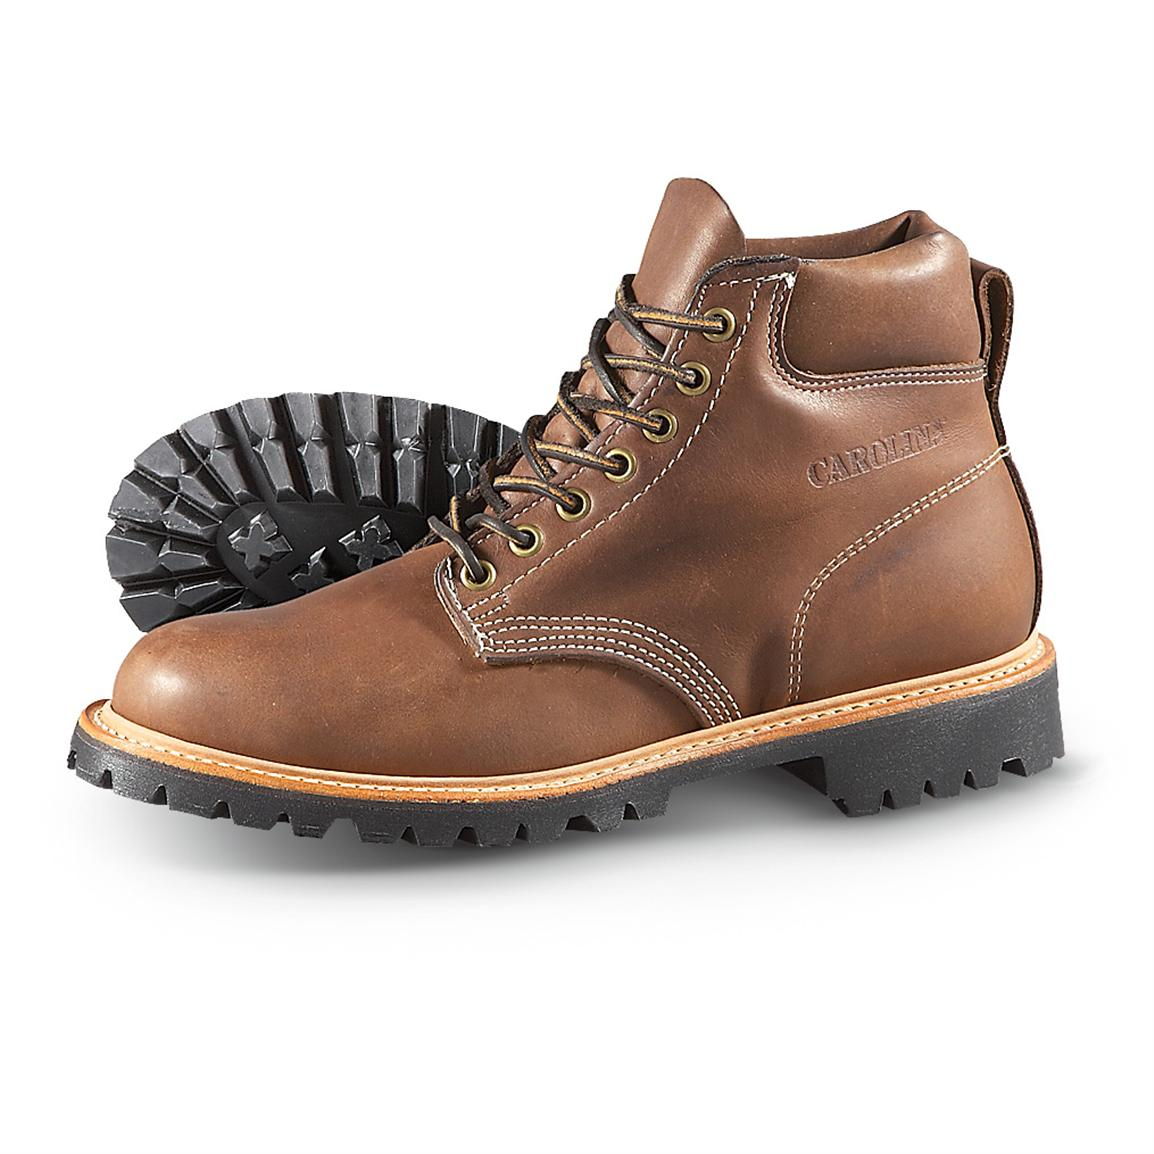 Men's Carolina® 6 inch City Work Boots, Brown